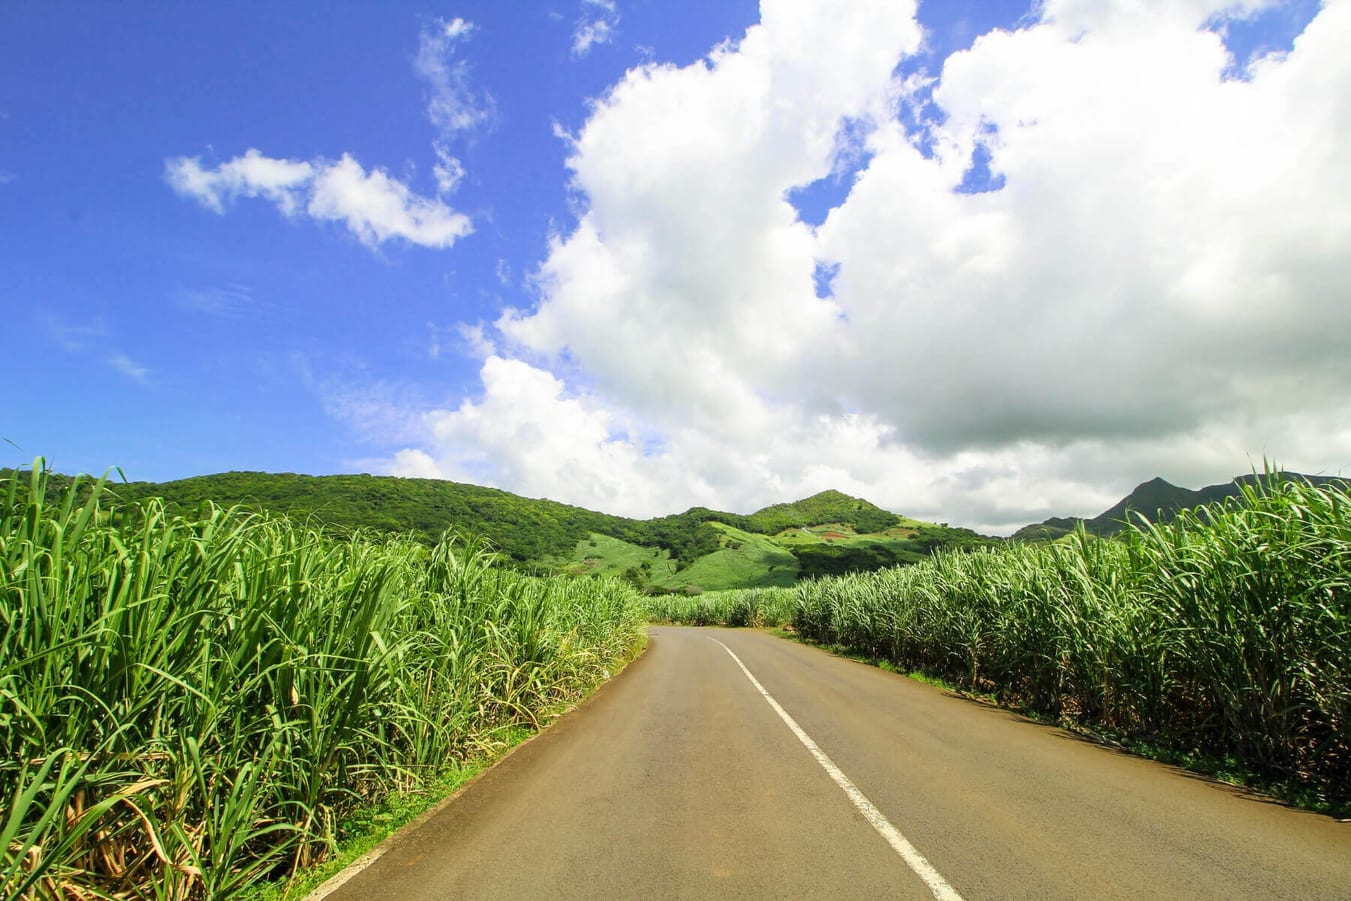 Sugar cane field - East coast